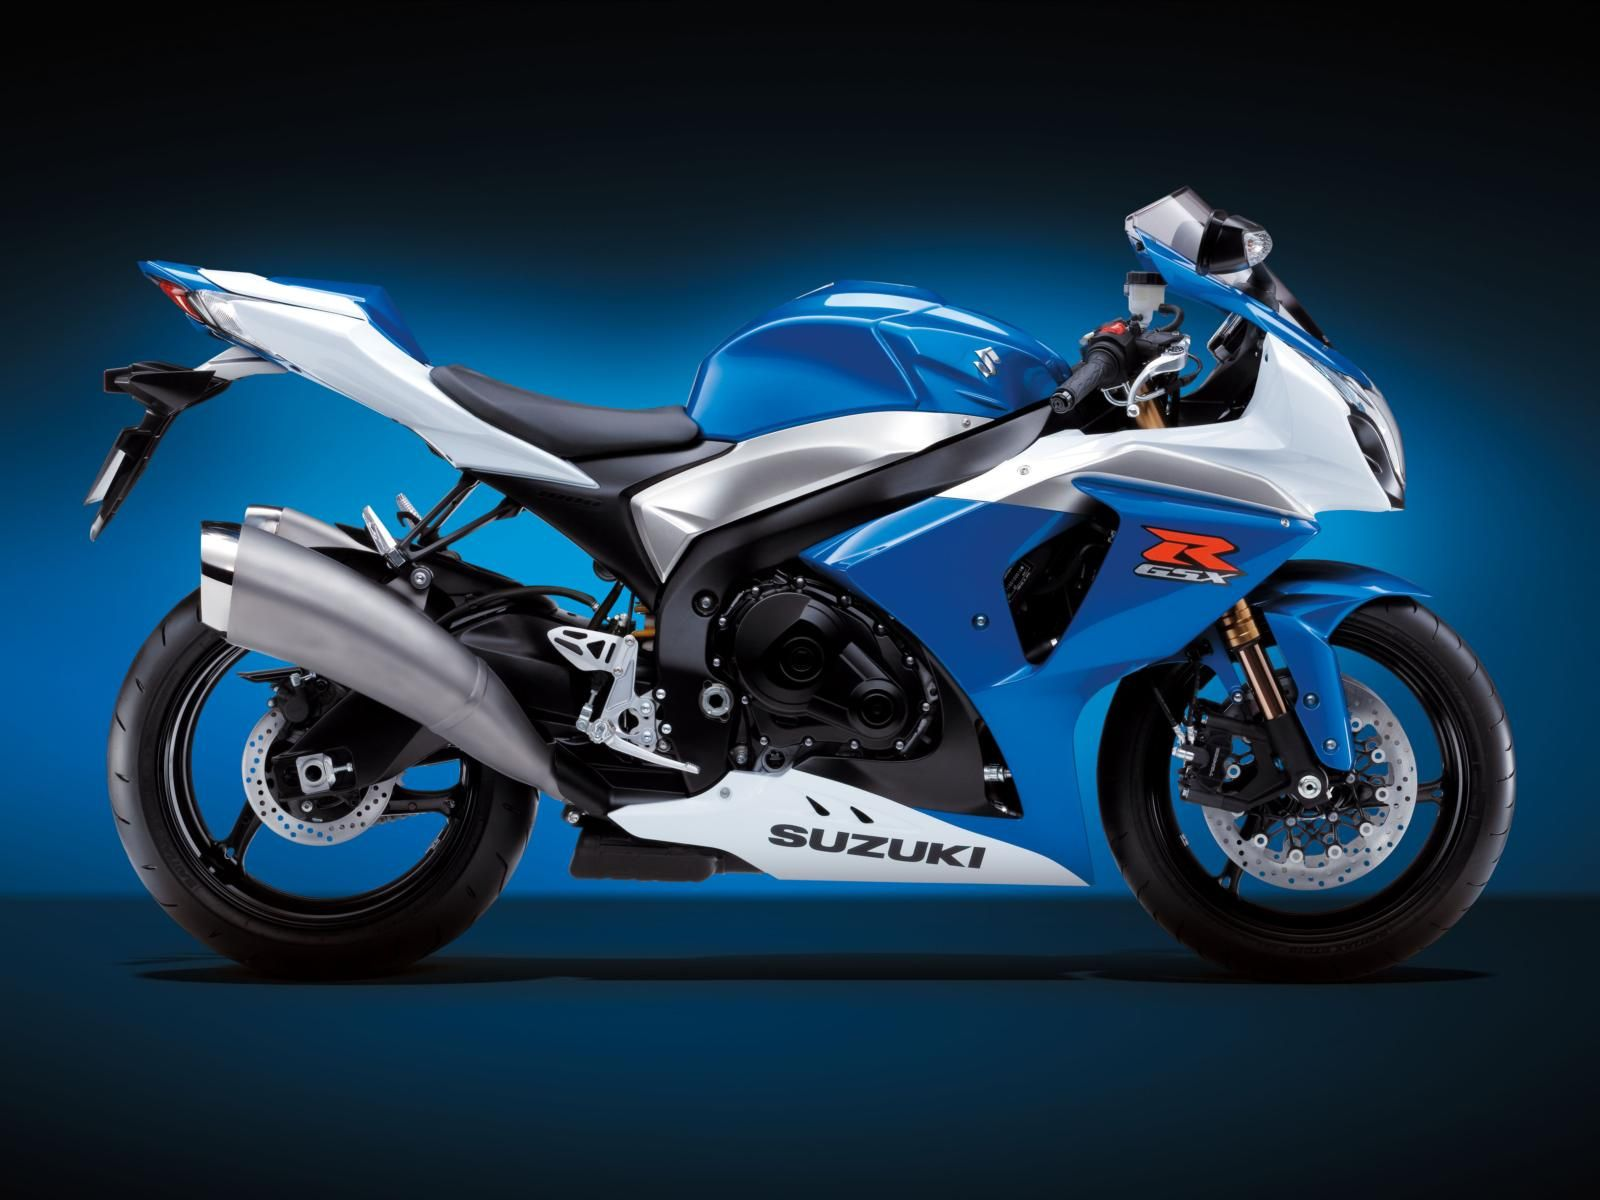 Blue Suzuki Gsx R Motorcycle Hd Widescreen Desktop Wallpaper